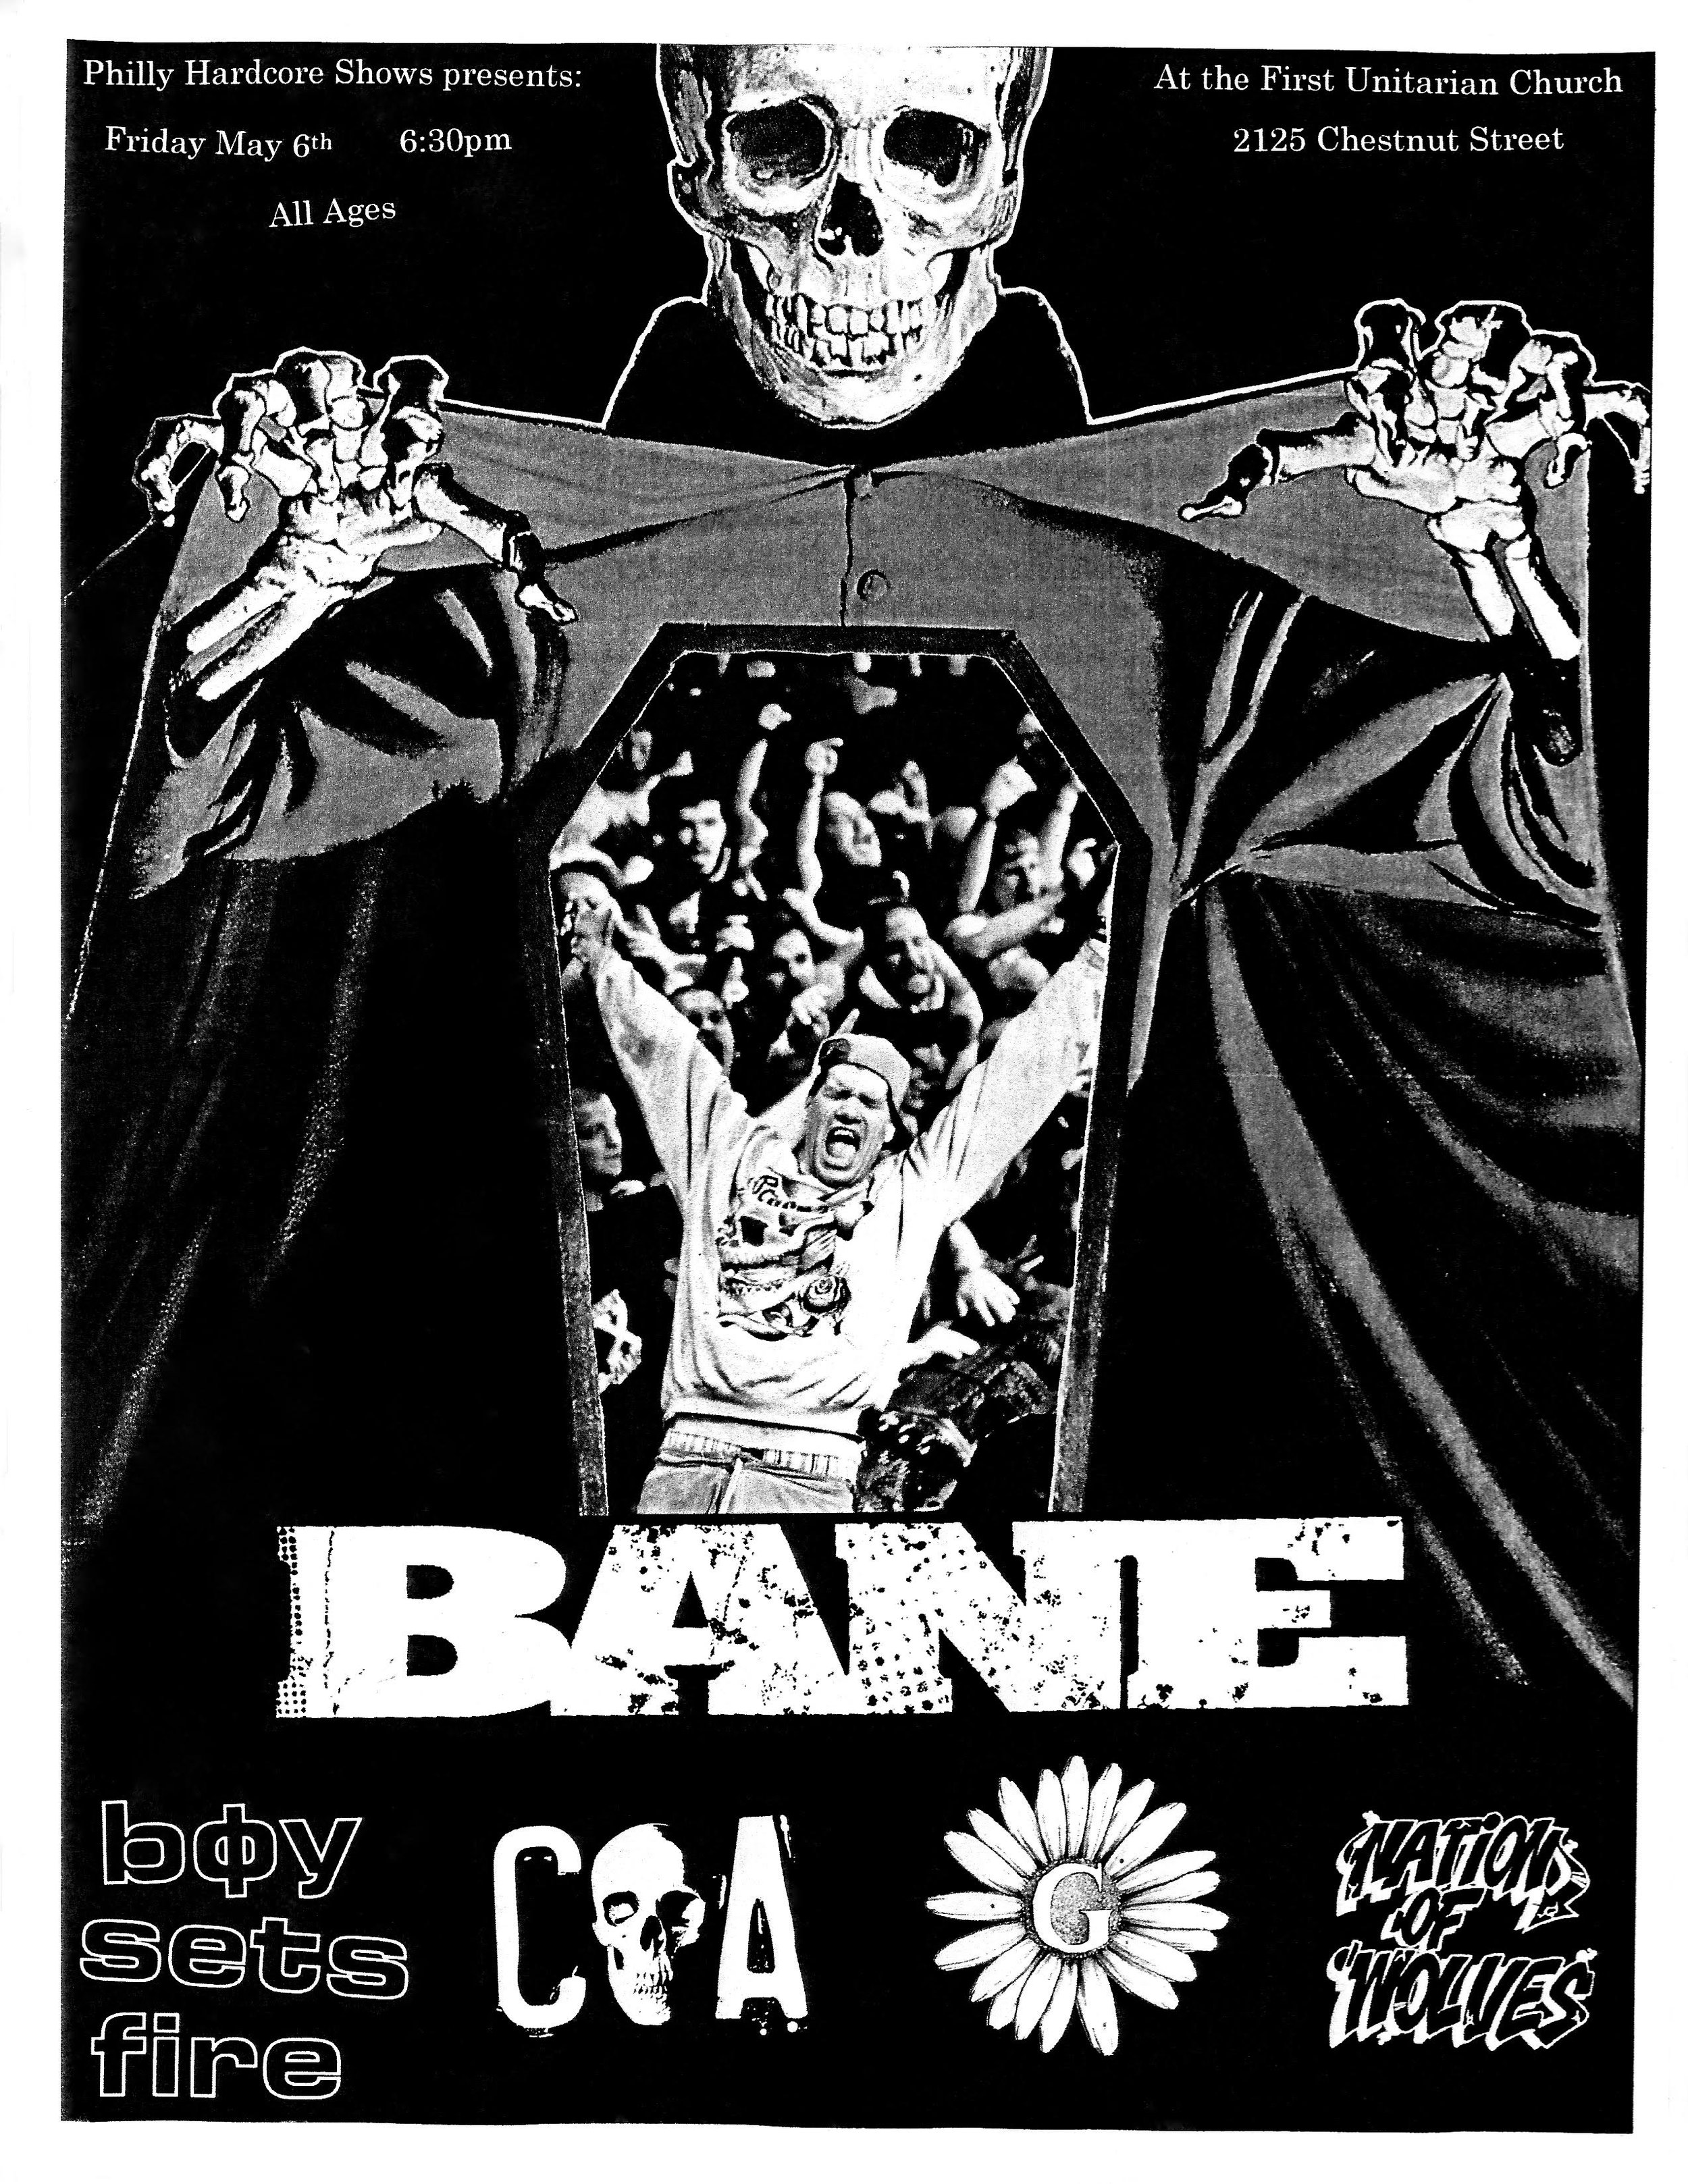 1) Bane - It's funny how the ones you put the least amount of effort into become the ones that people claim to be your best work. I lifted the graphic of the skeleton from a 1950's horror film poster, and cut out the image inside the coffin so i could lay it over a photo that Angela Owens took of Bane from This Is Hardcore a few years back. All in all, I think it turned out alright and I was hyped to work with Angela because she is the best.